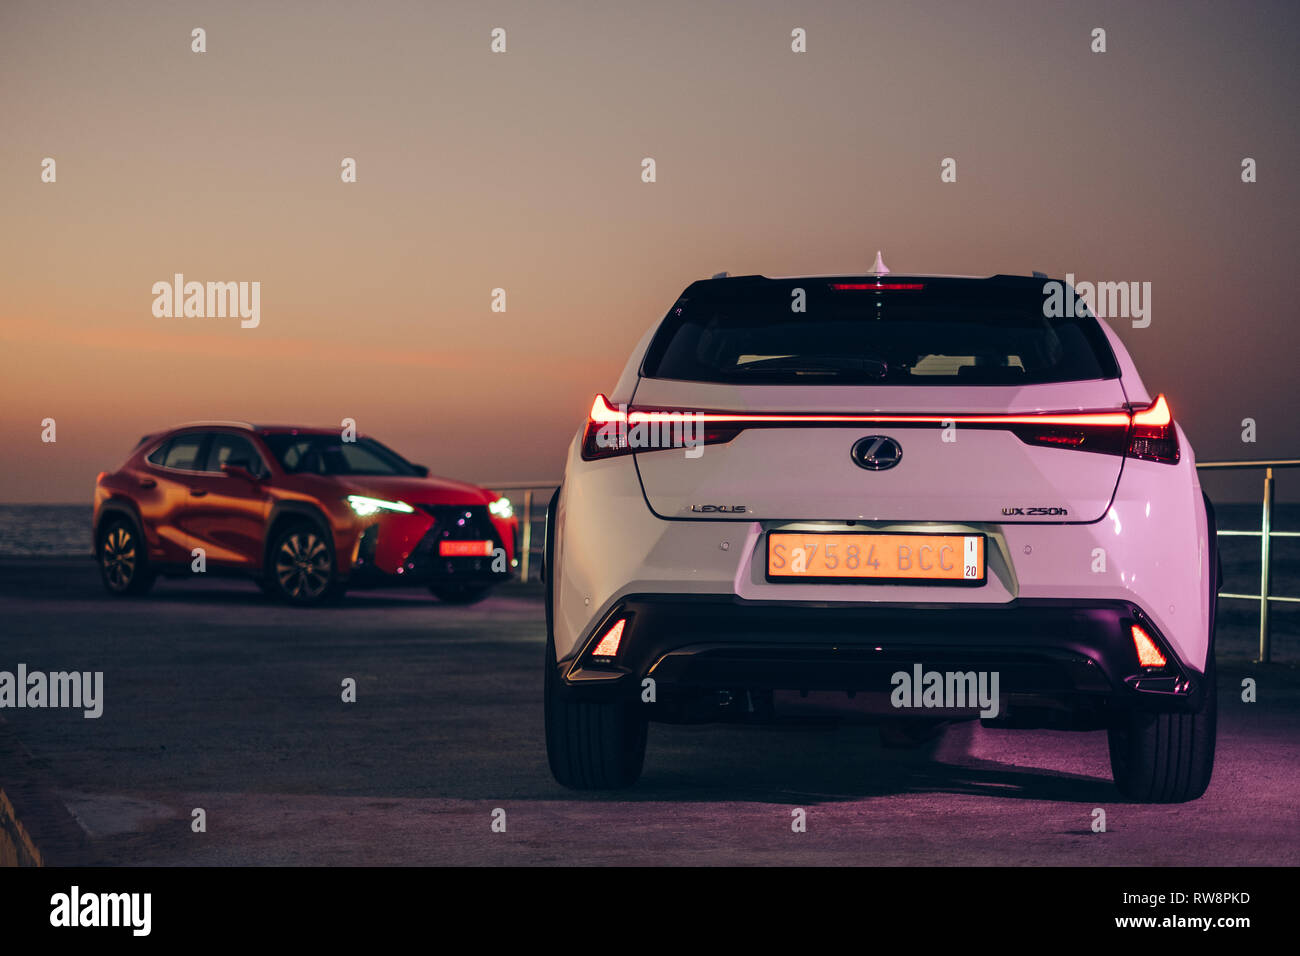 BARCELONA, FEBRUARY 2018 - New Lexus UX compact sized hybrid crossover is displayed for editorial purposes - Stock Image